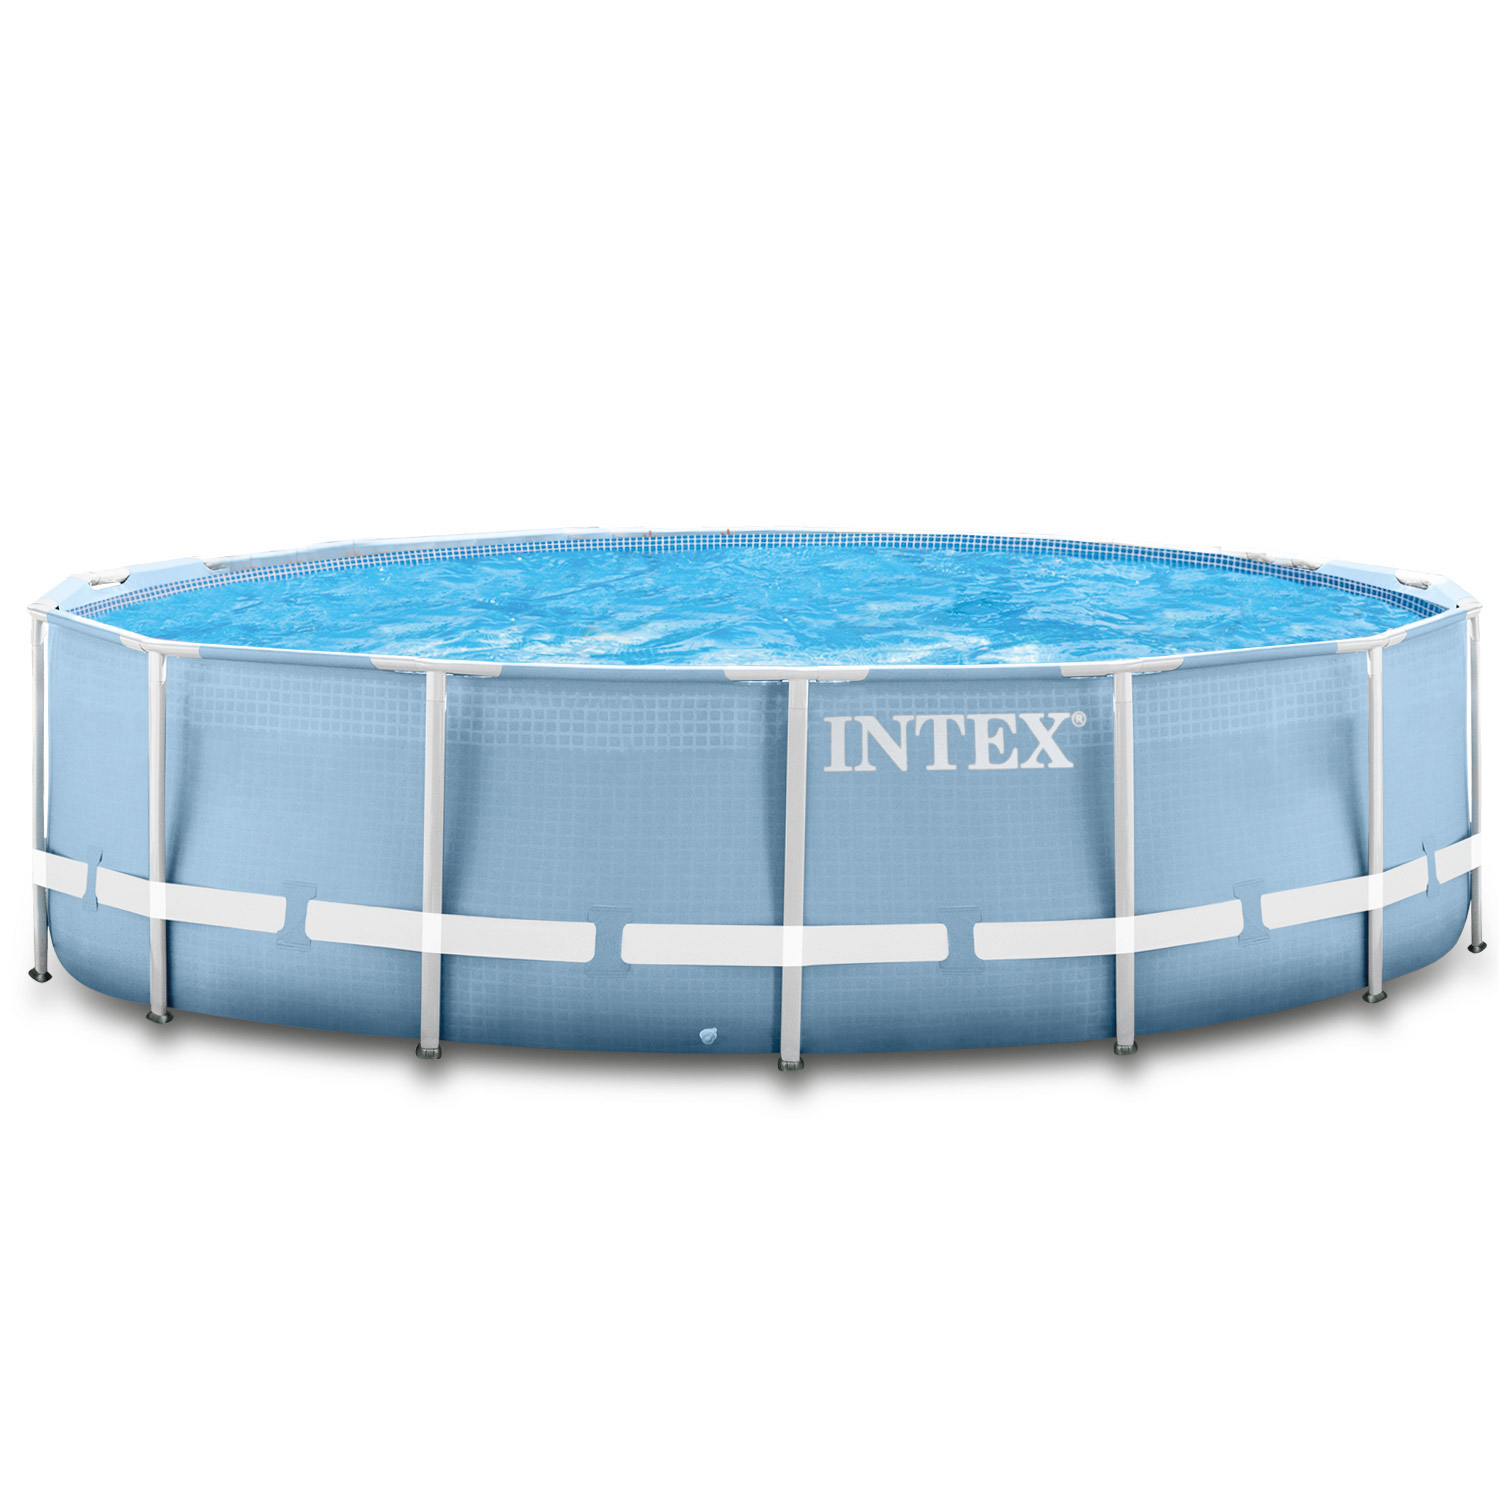 Intex swimming pool frame 457x122cm mit pumpe leiter for Pool aufblasbar mit pumpe